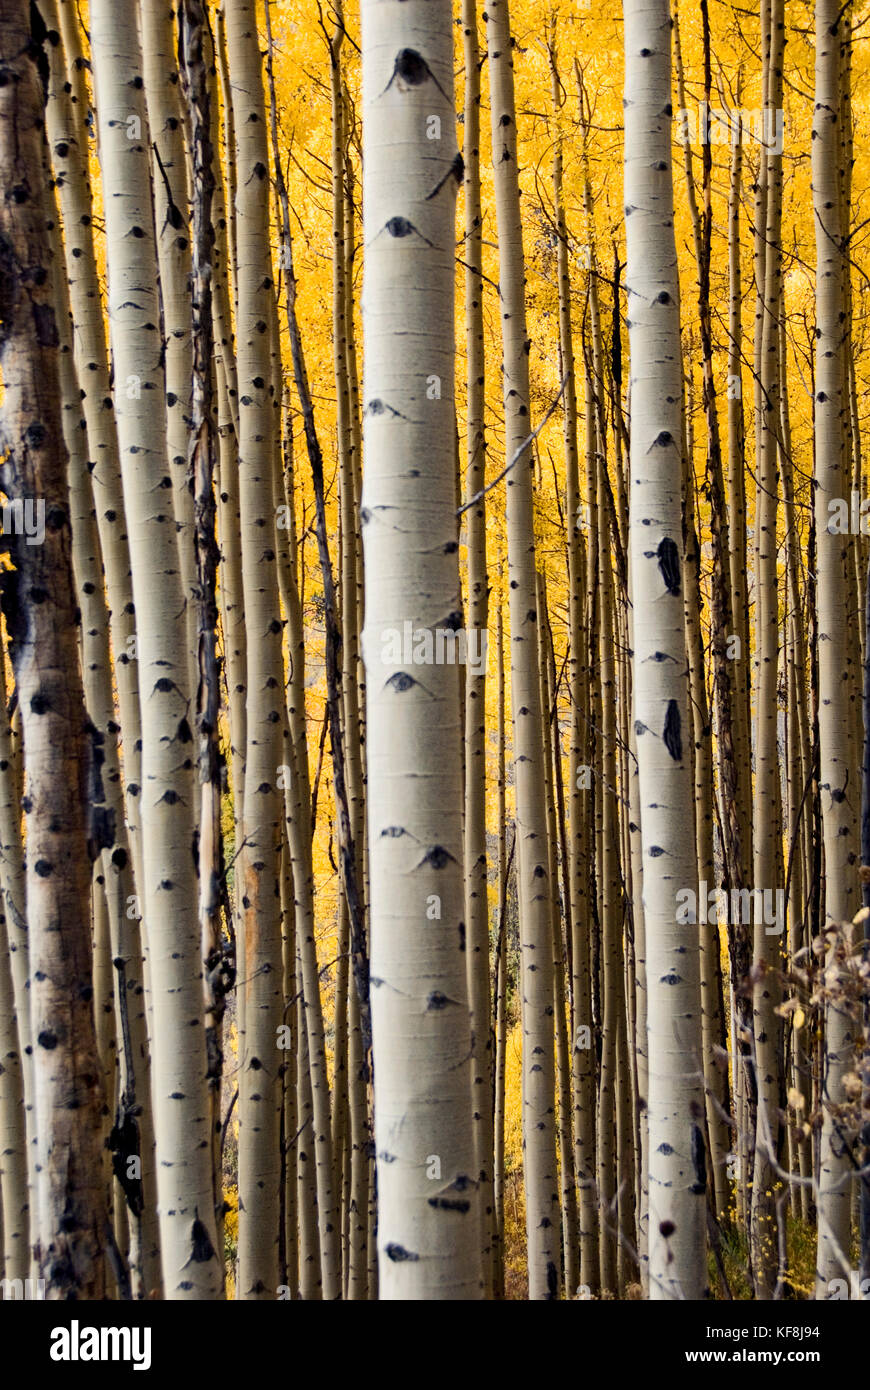 ASPENS FROM A DIFFERENT VIEW - Stock Image